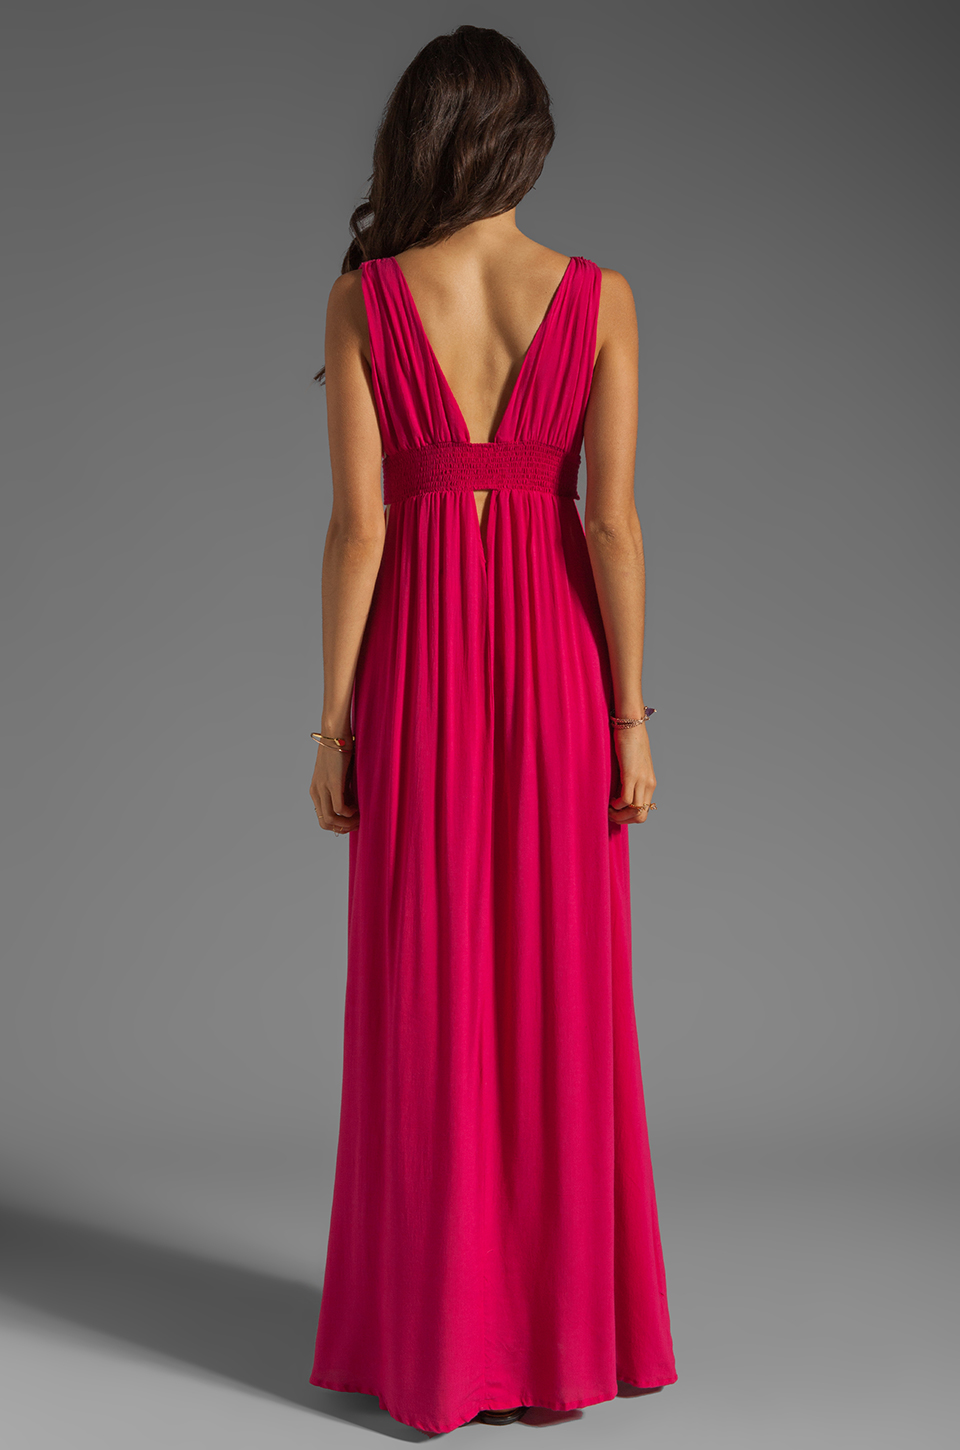 Indah Anjeli Rayon Crepe Plunging V-Nevk and V-Back Empire Maxi Dress in Hot Pink